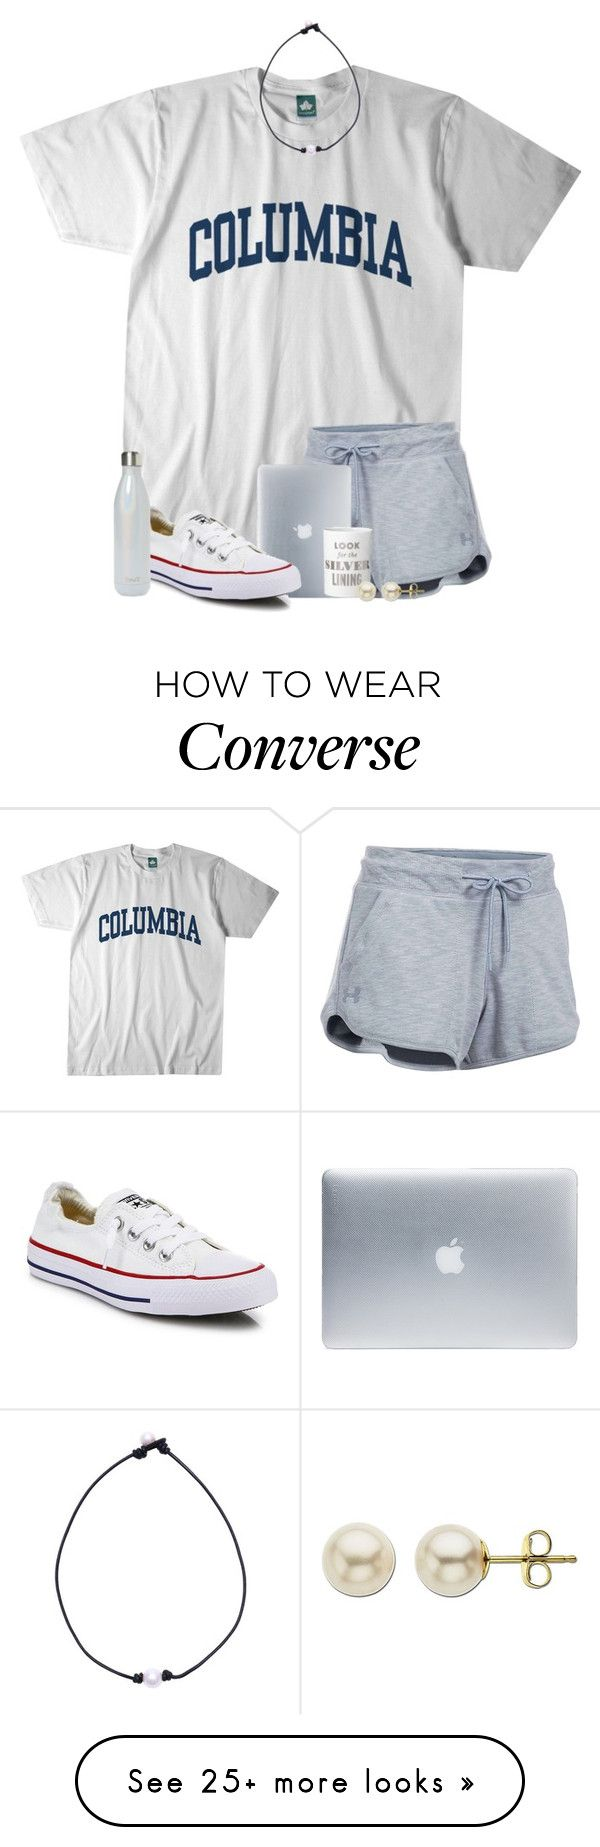 """bored out of my mind "" by jeh-shev on Polyvore featuring Columbia, Under Armour, Incase, Converse, Kate Spade, S'well and Lord & Taylor"